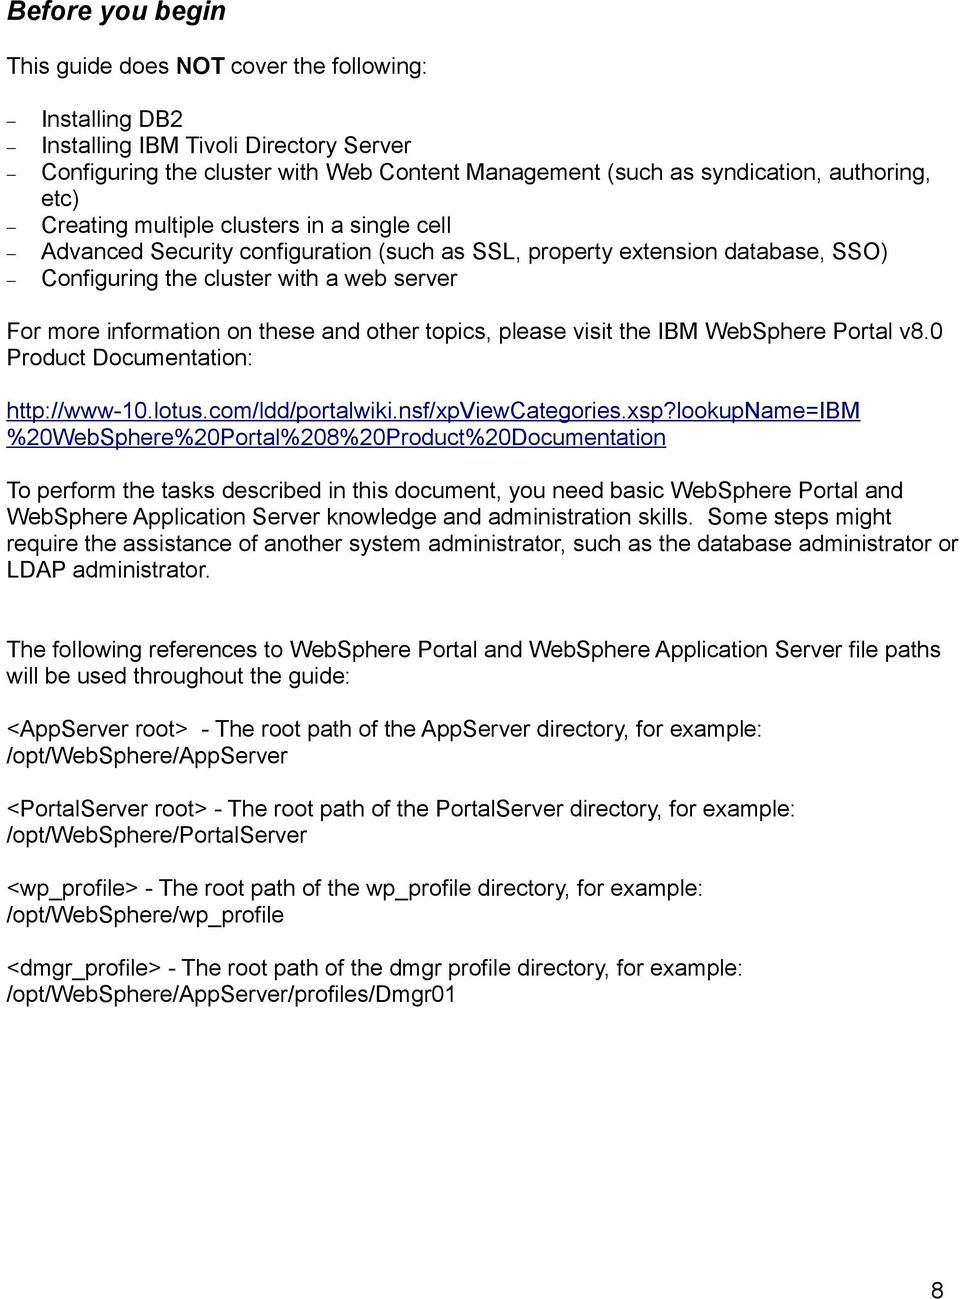 these and other topics, please visit the IBM WebSphere Portal v8.0 Product Documentation: http://www-10.lotus.com/ldd/portalwiki.nsf/xpviewcategories.xsp?